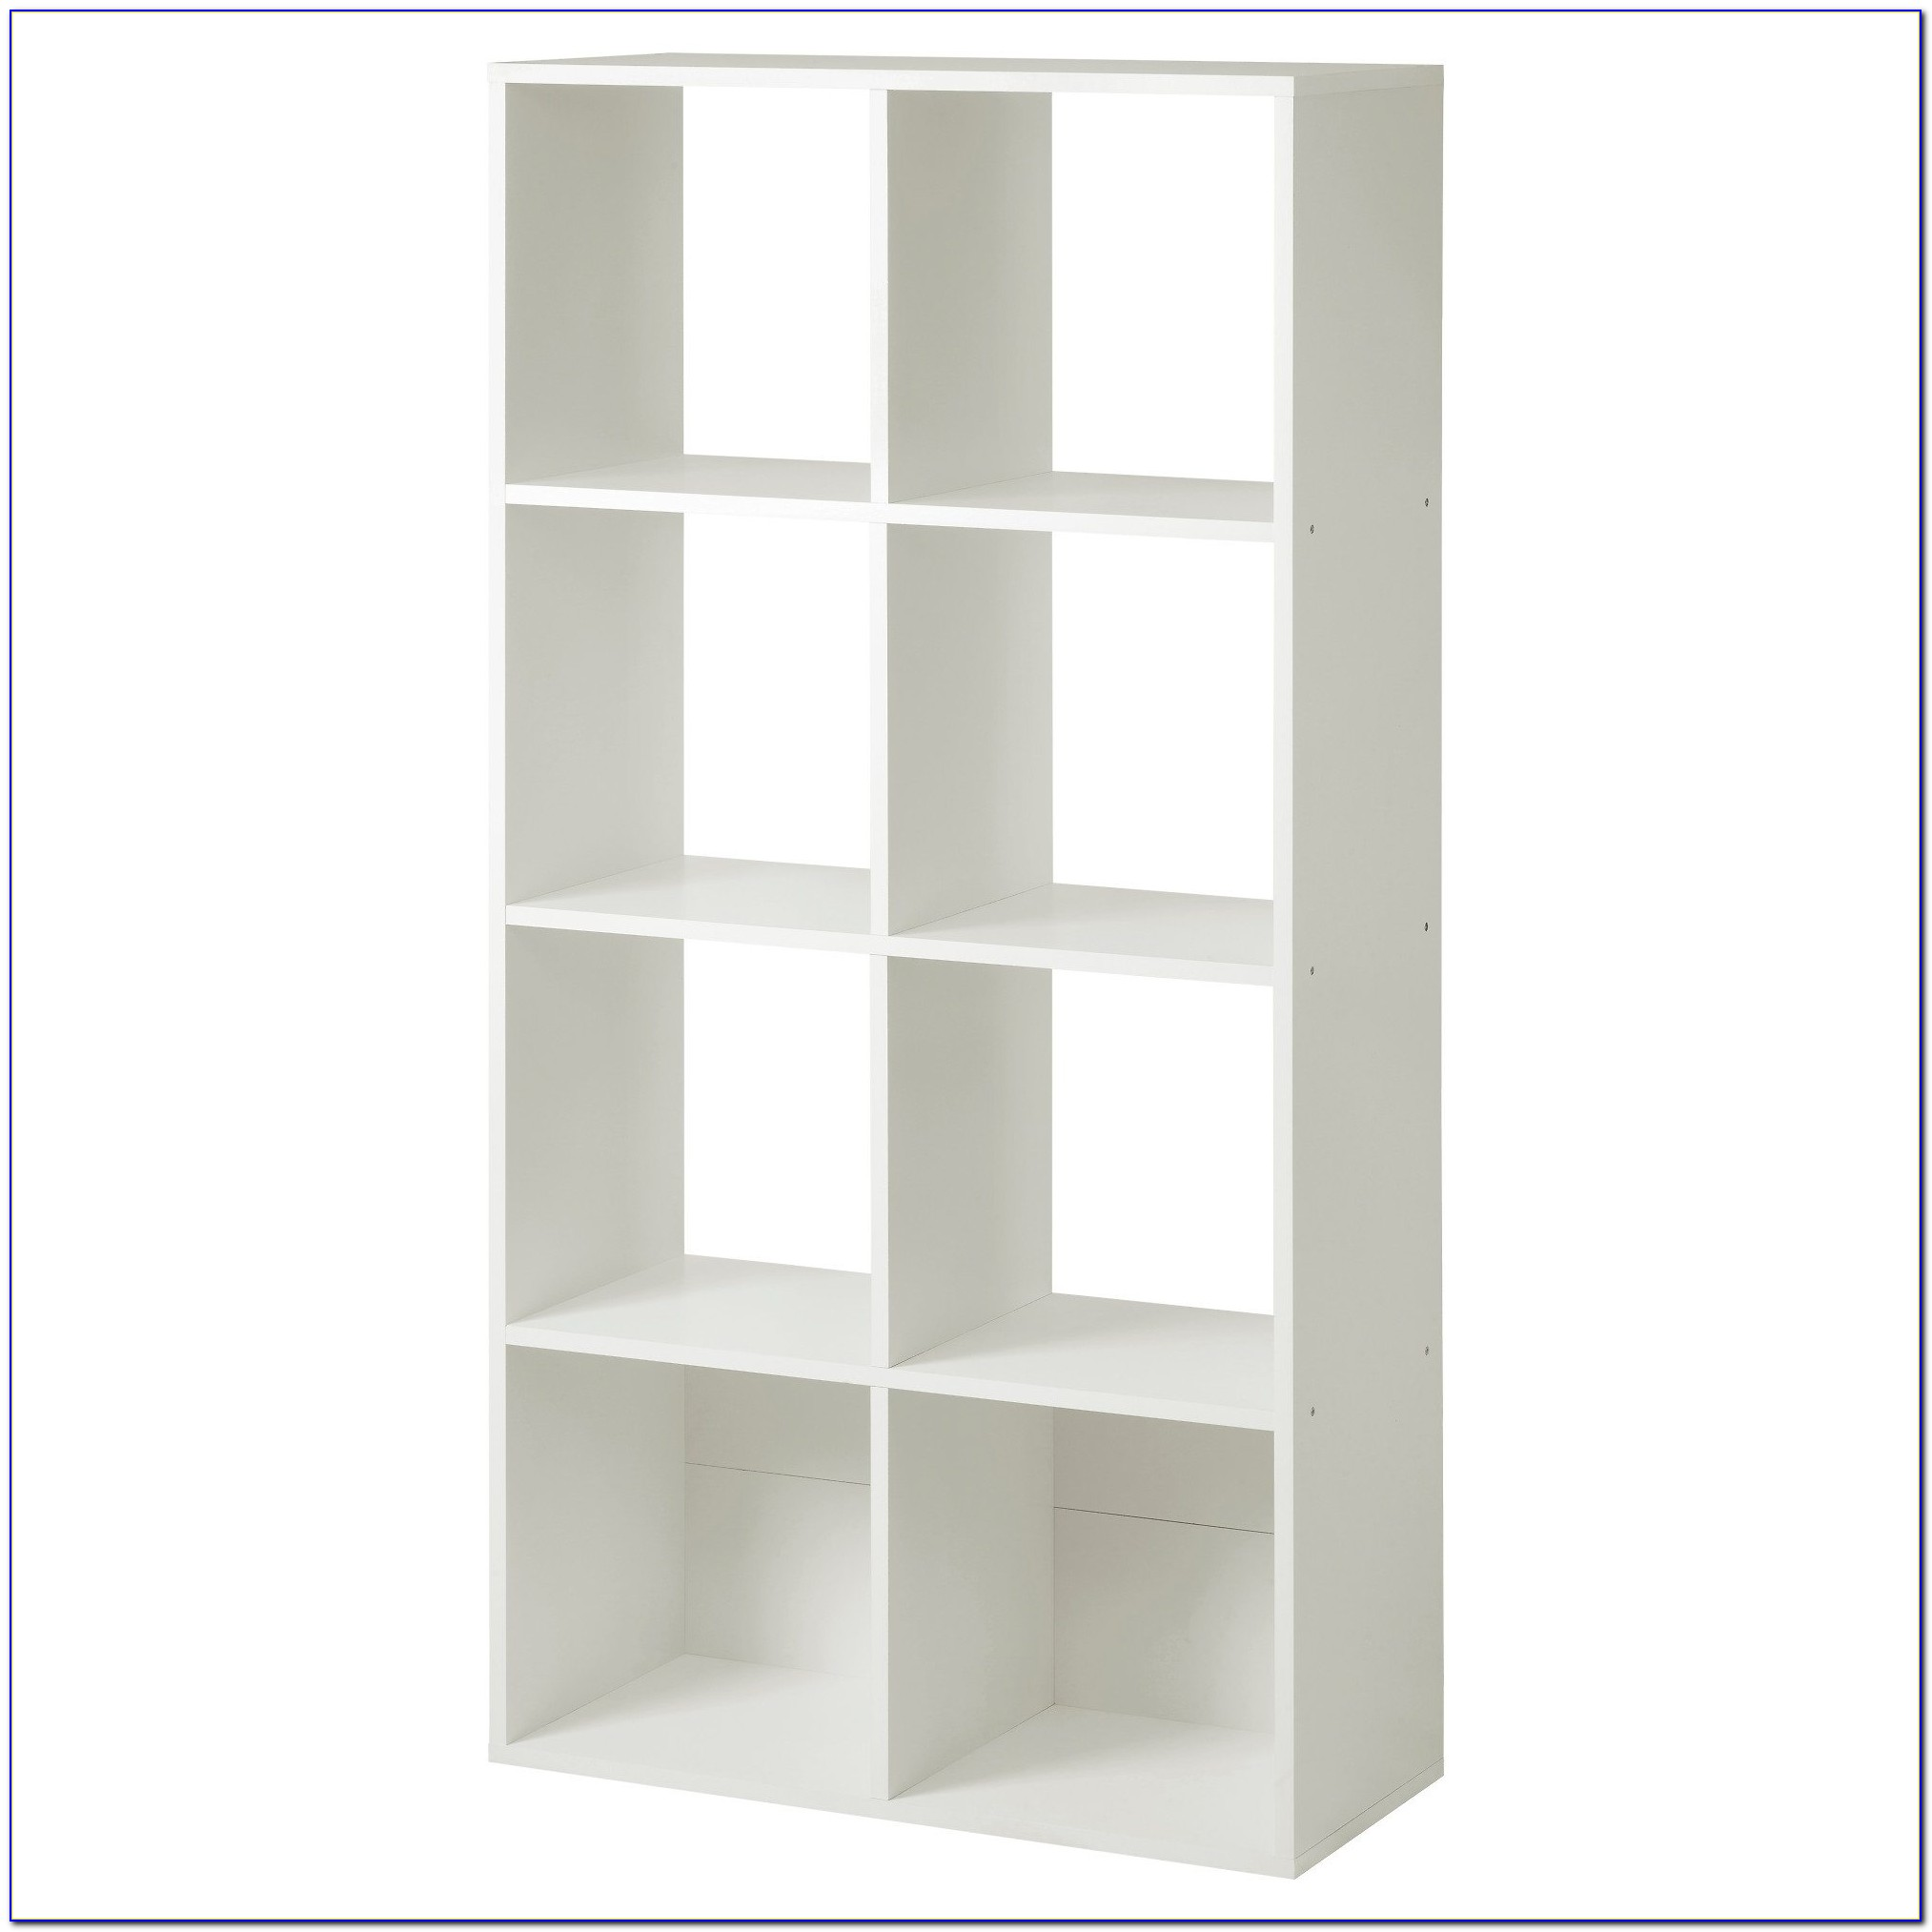 Ikea Malm Bookcase Instructions